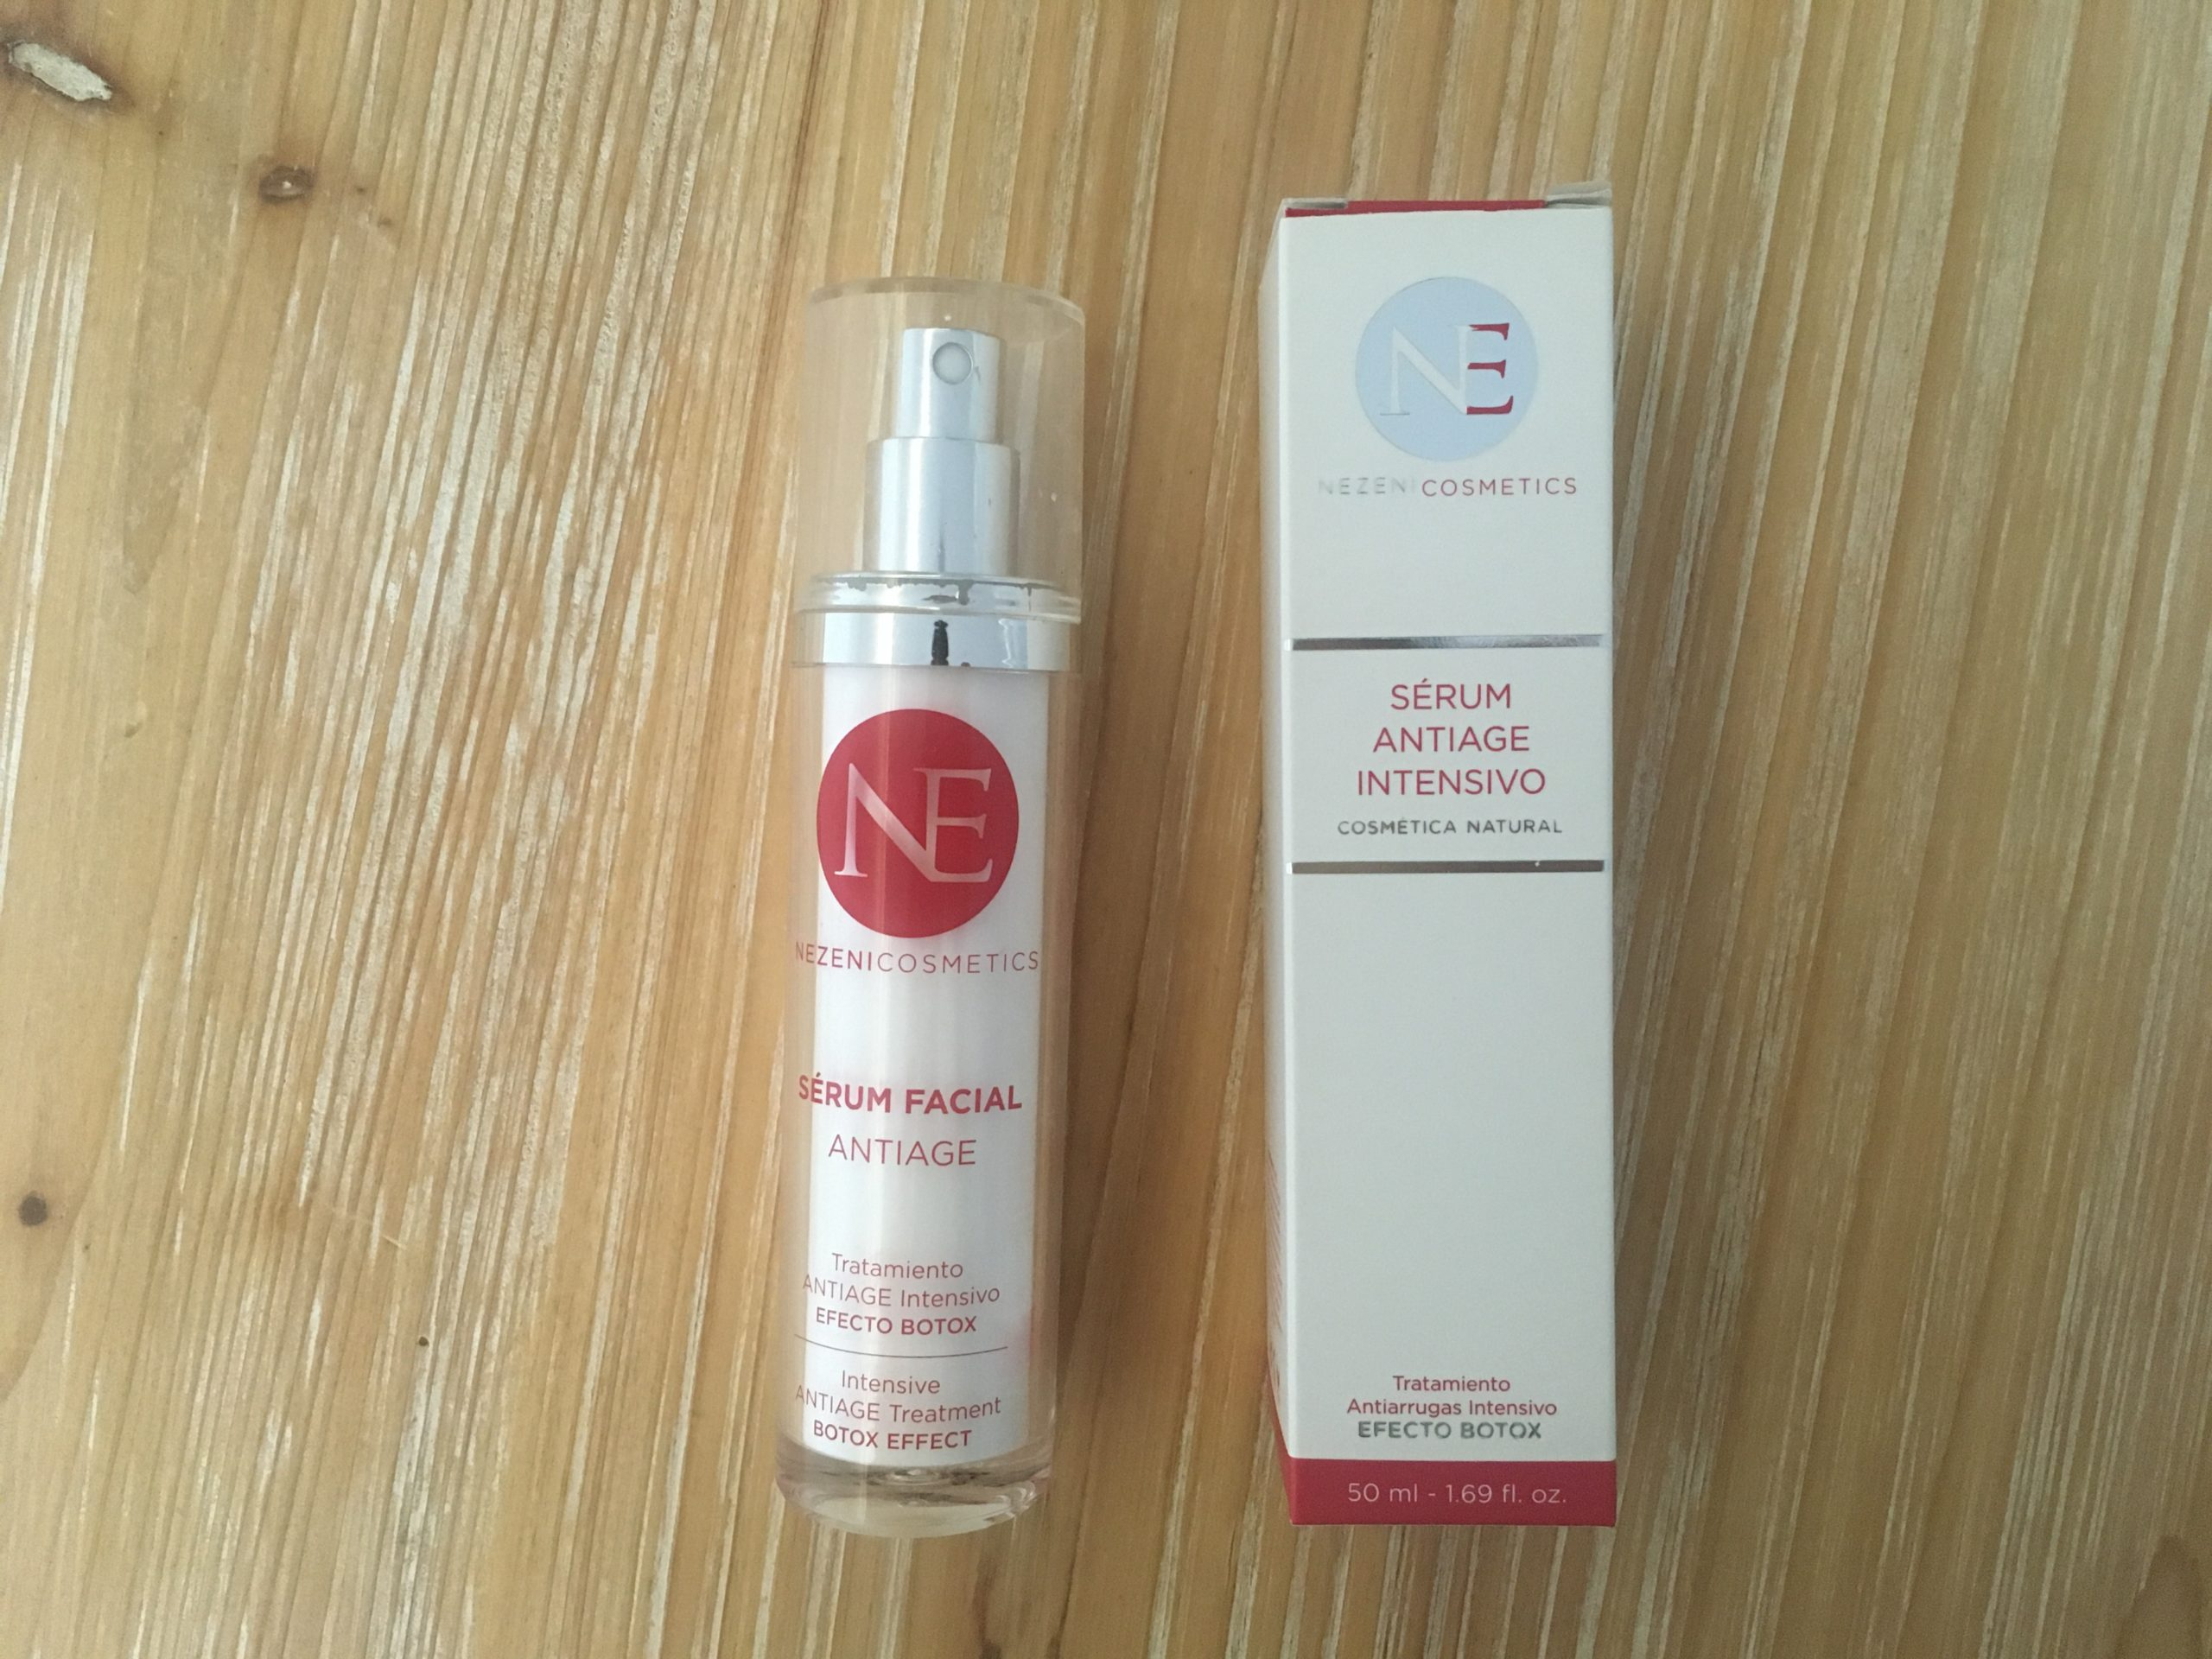 serum antiage nezeni